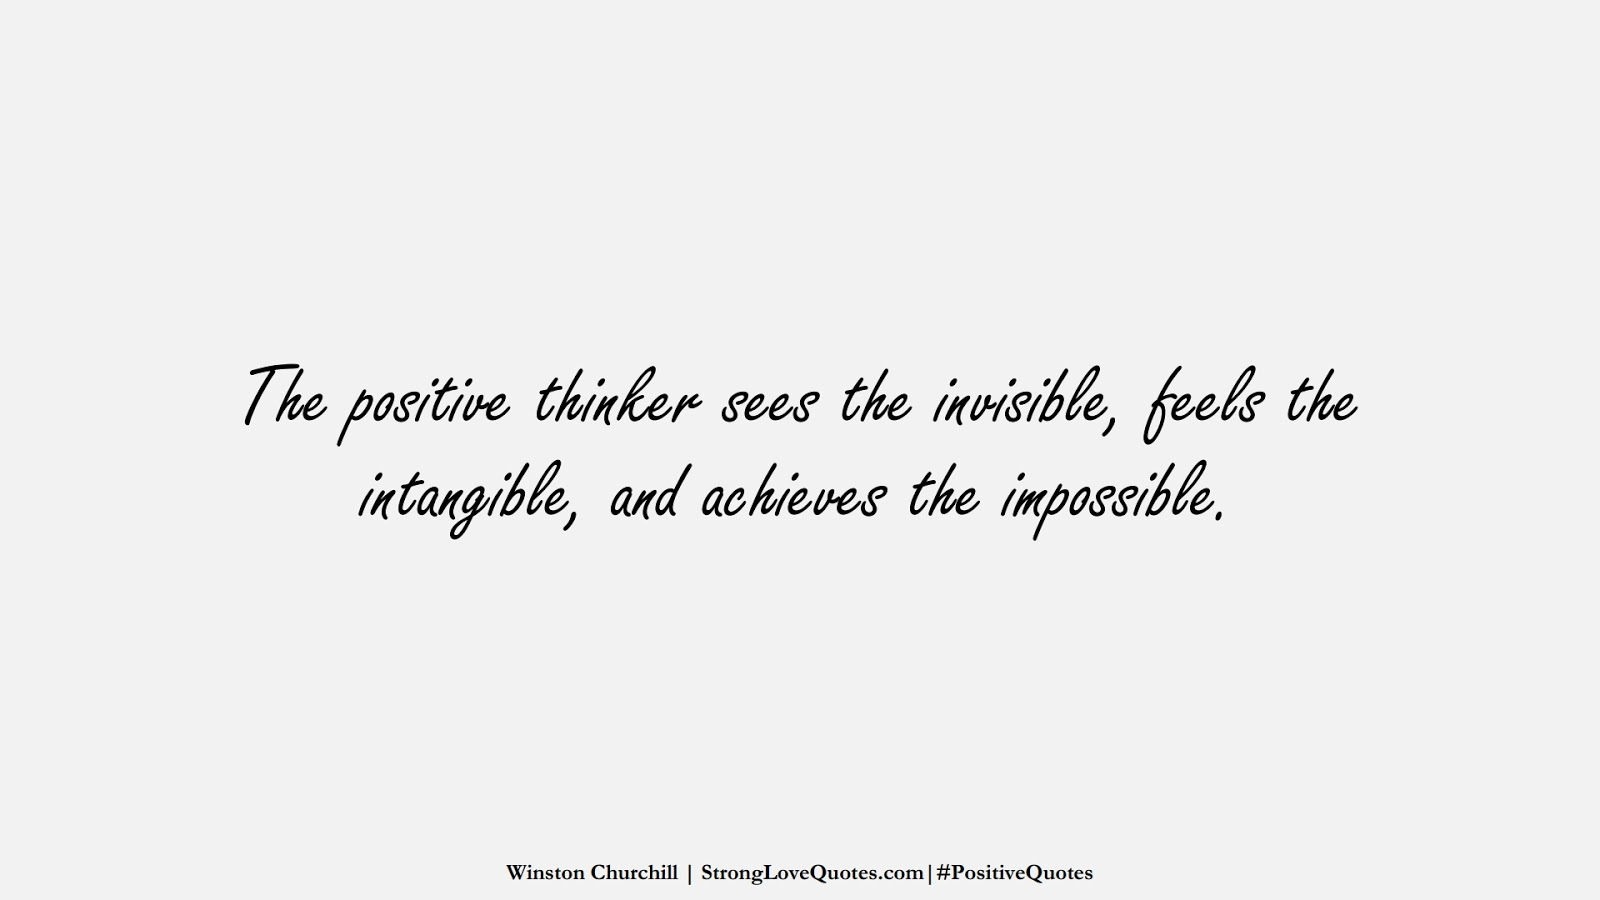 The positive thinker sees the invisible, feels the intangible, and achieves the impossible. (Winston Churchill);  #PositiveQuotes